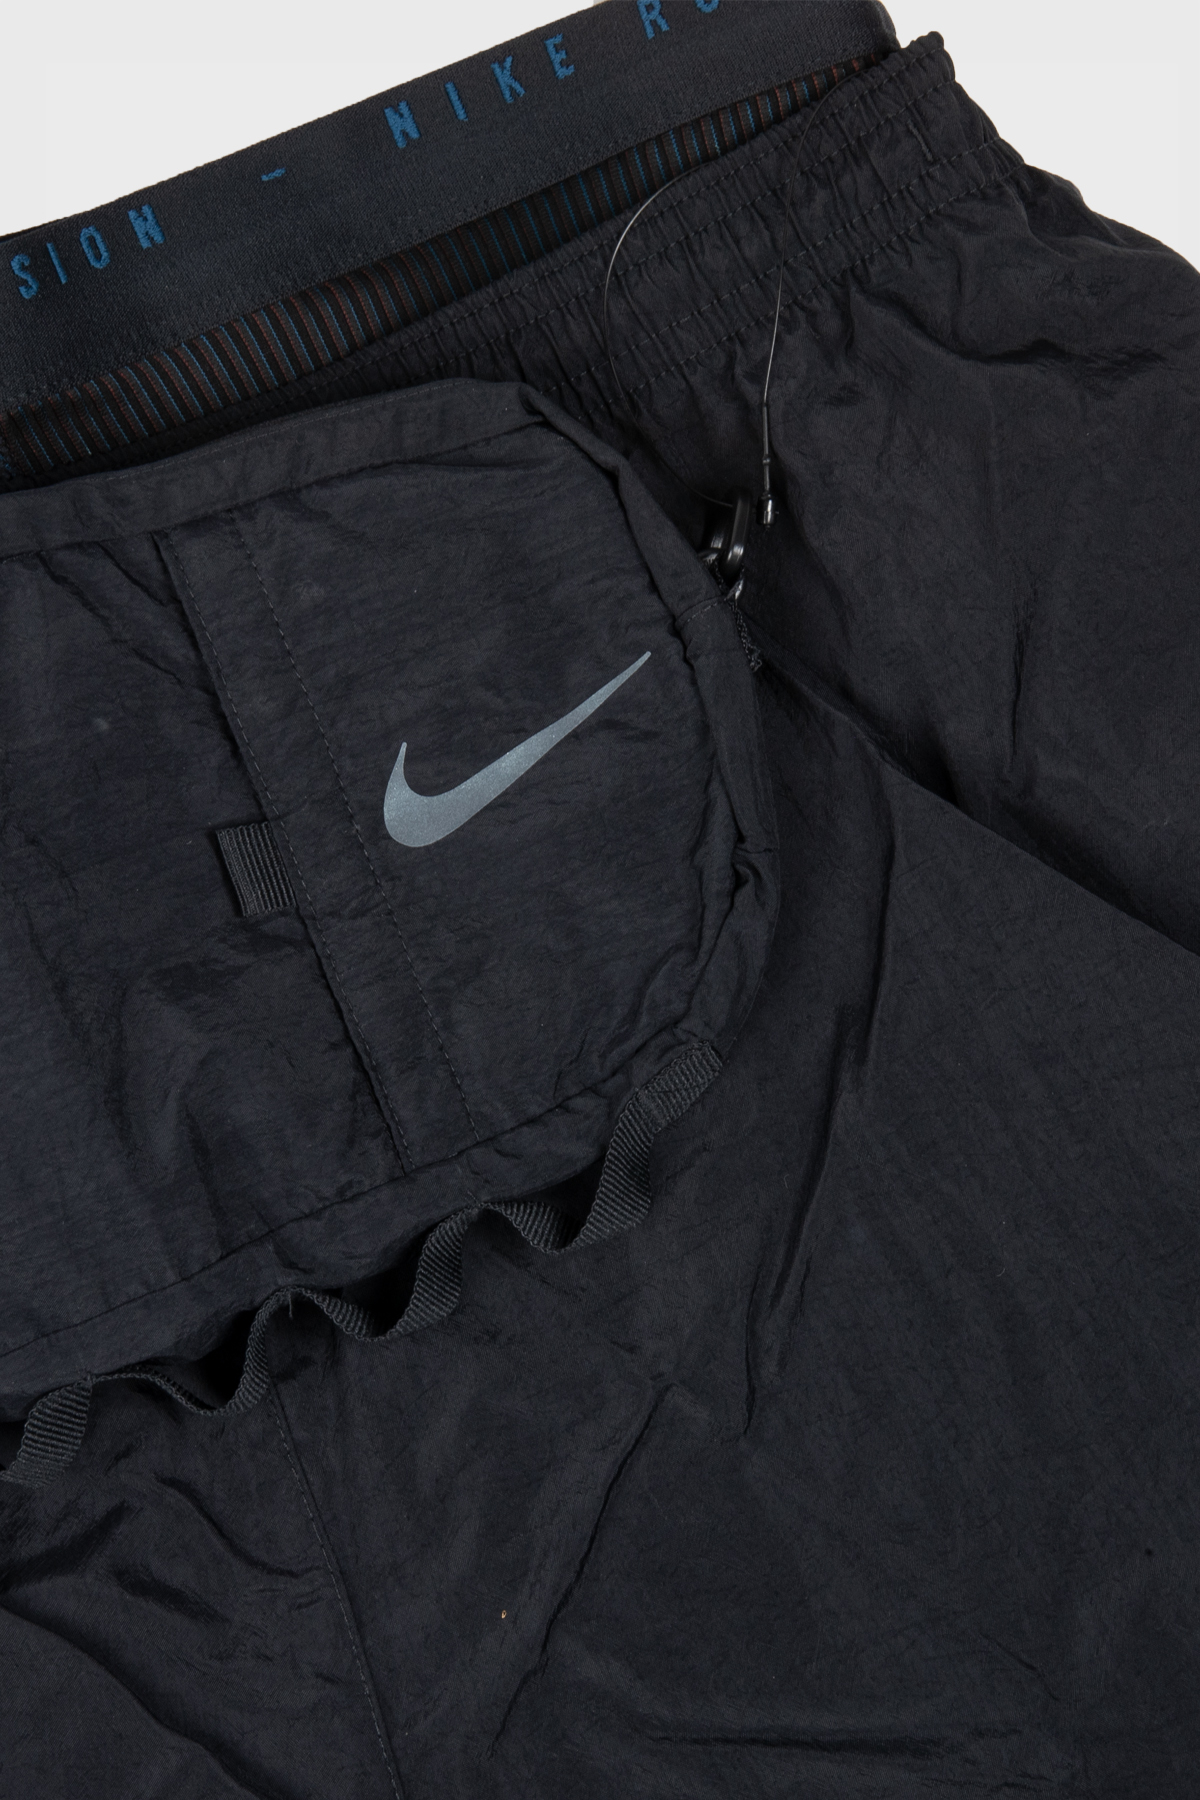 Nike - run Division Short 3-in-1 - Black